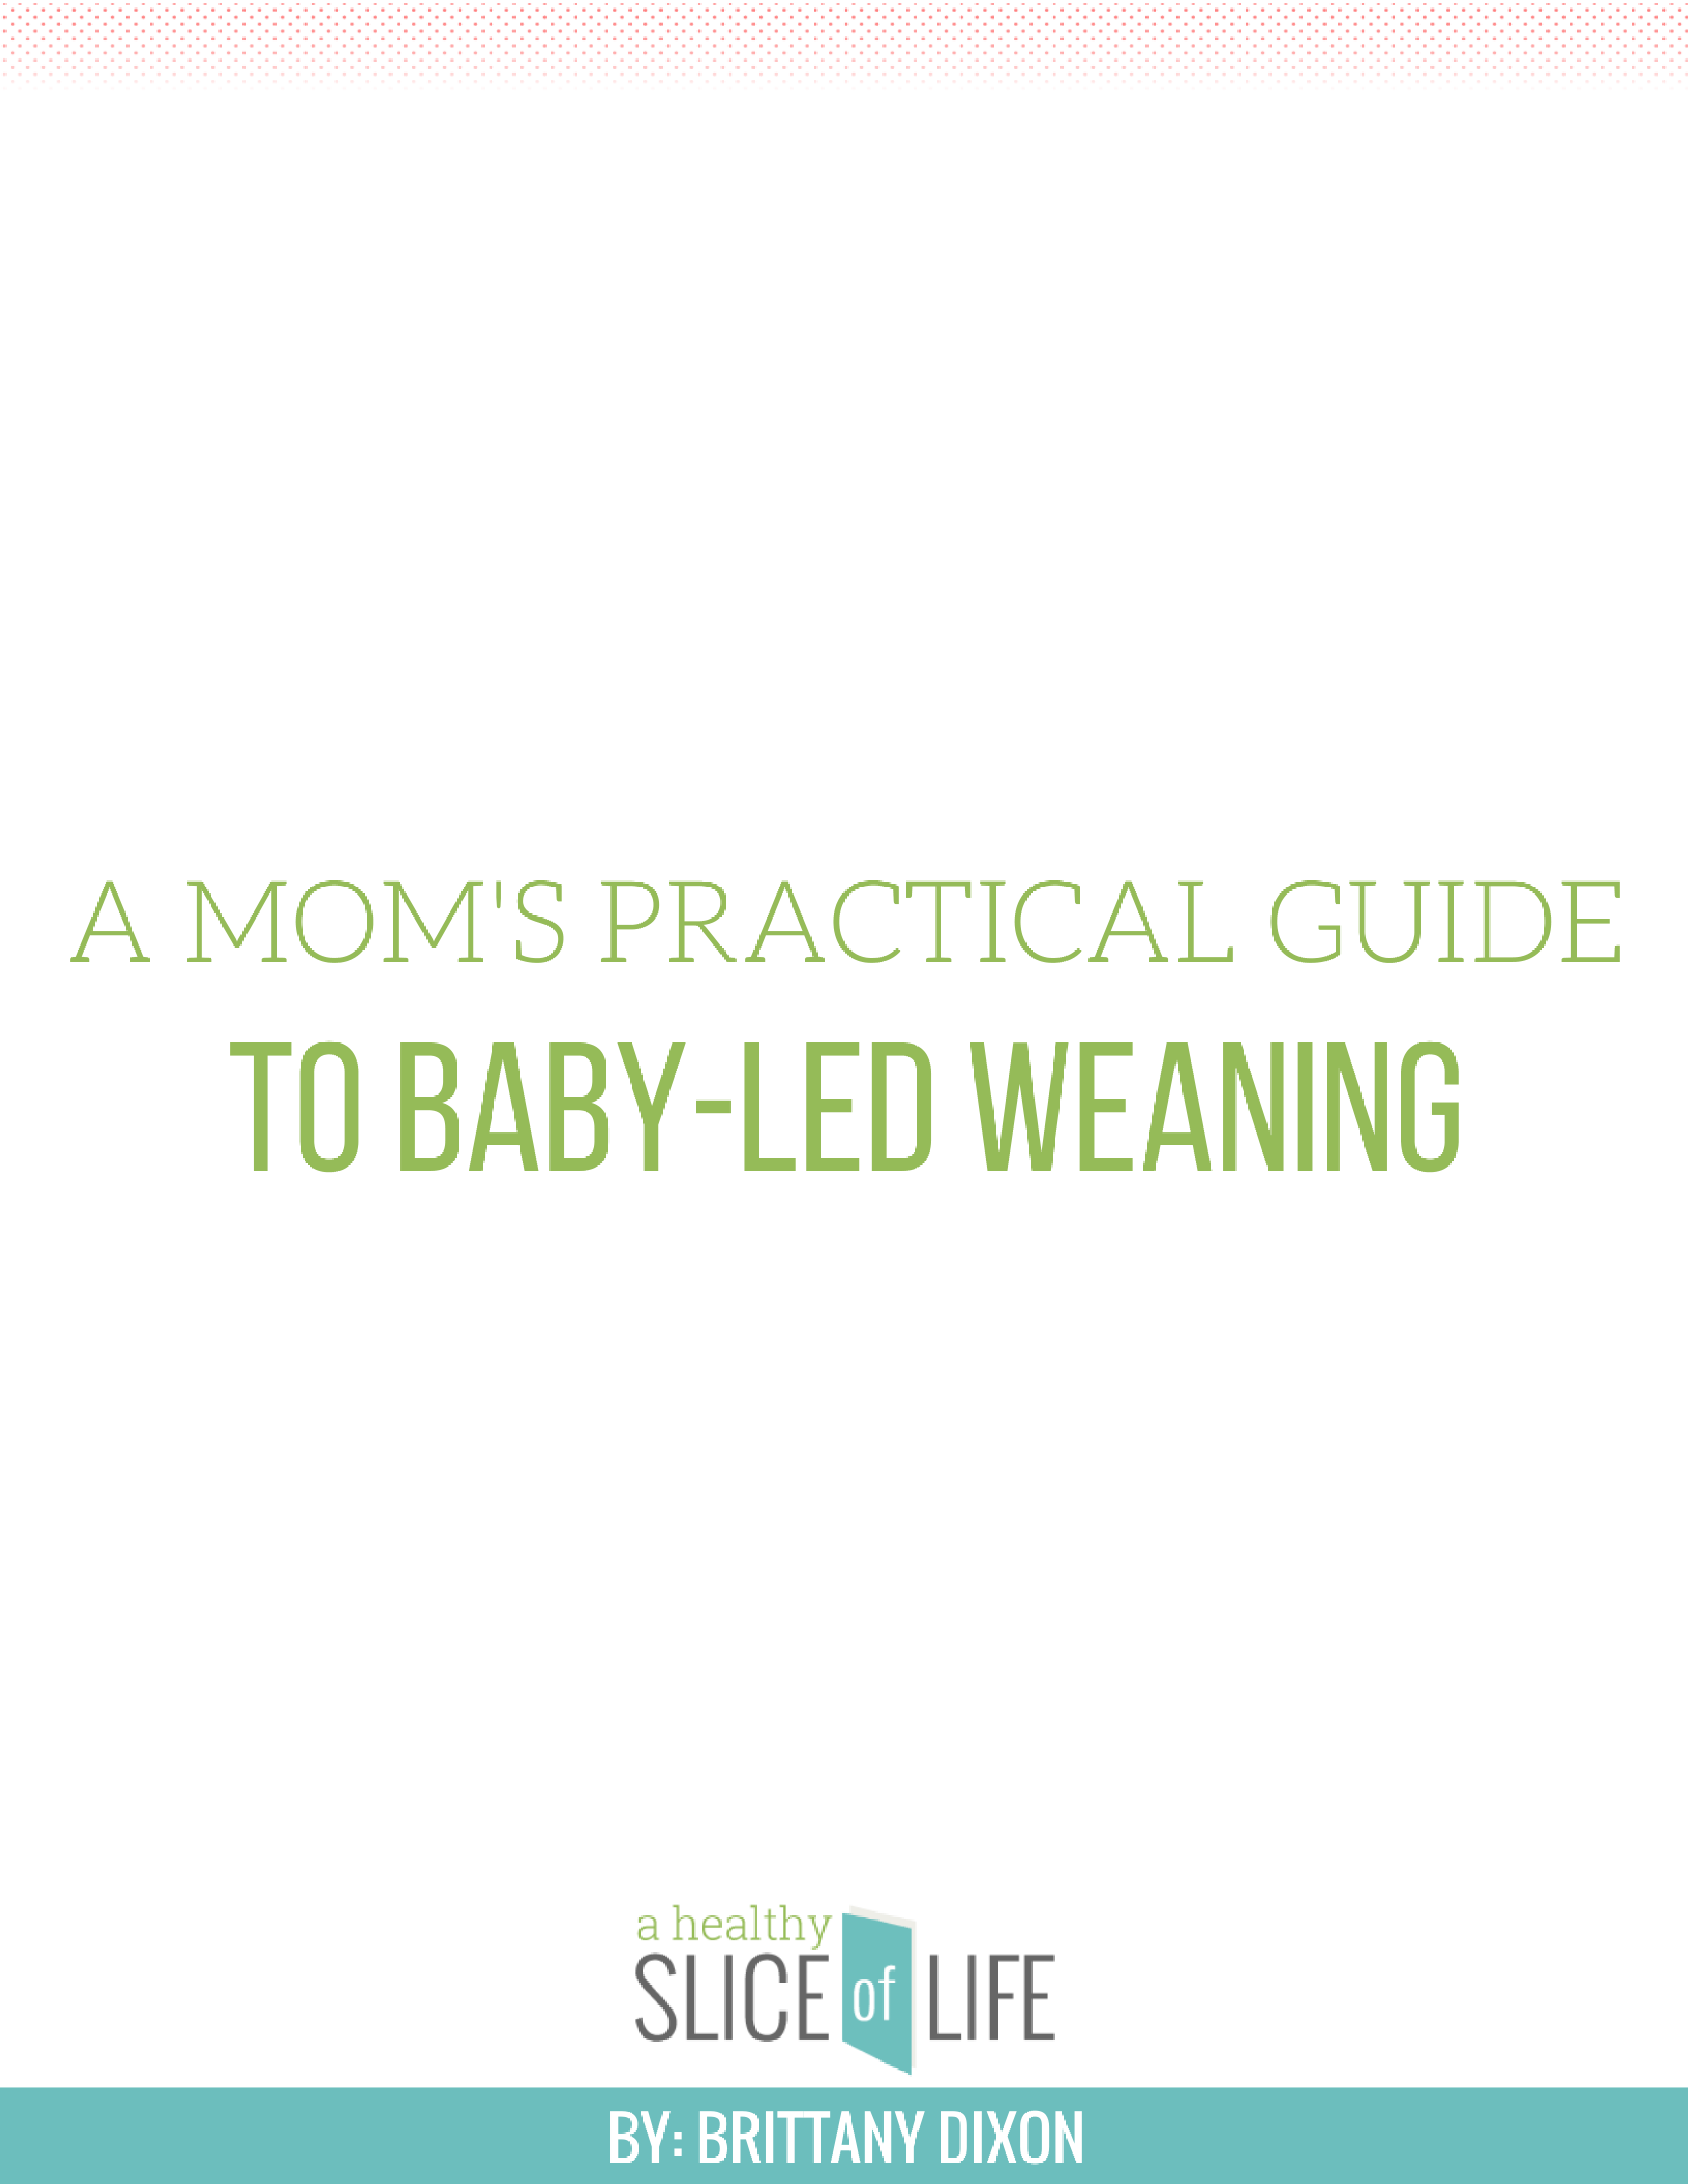 A Mom's Practical Guide to Baby Led Weaning - e-book cover